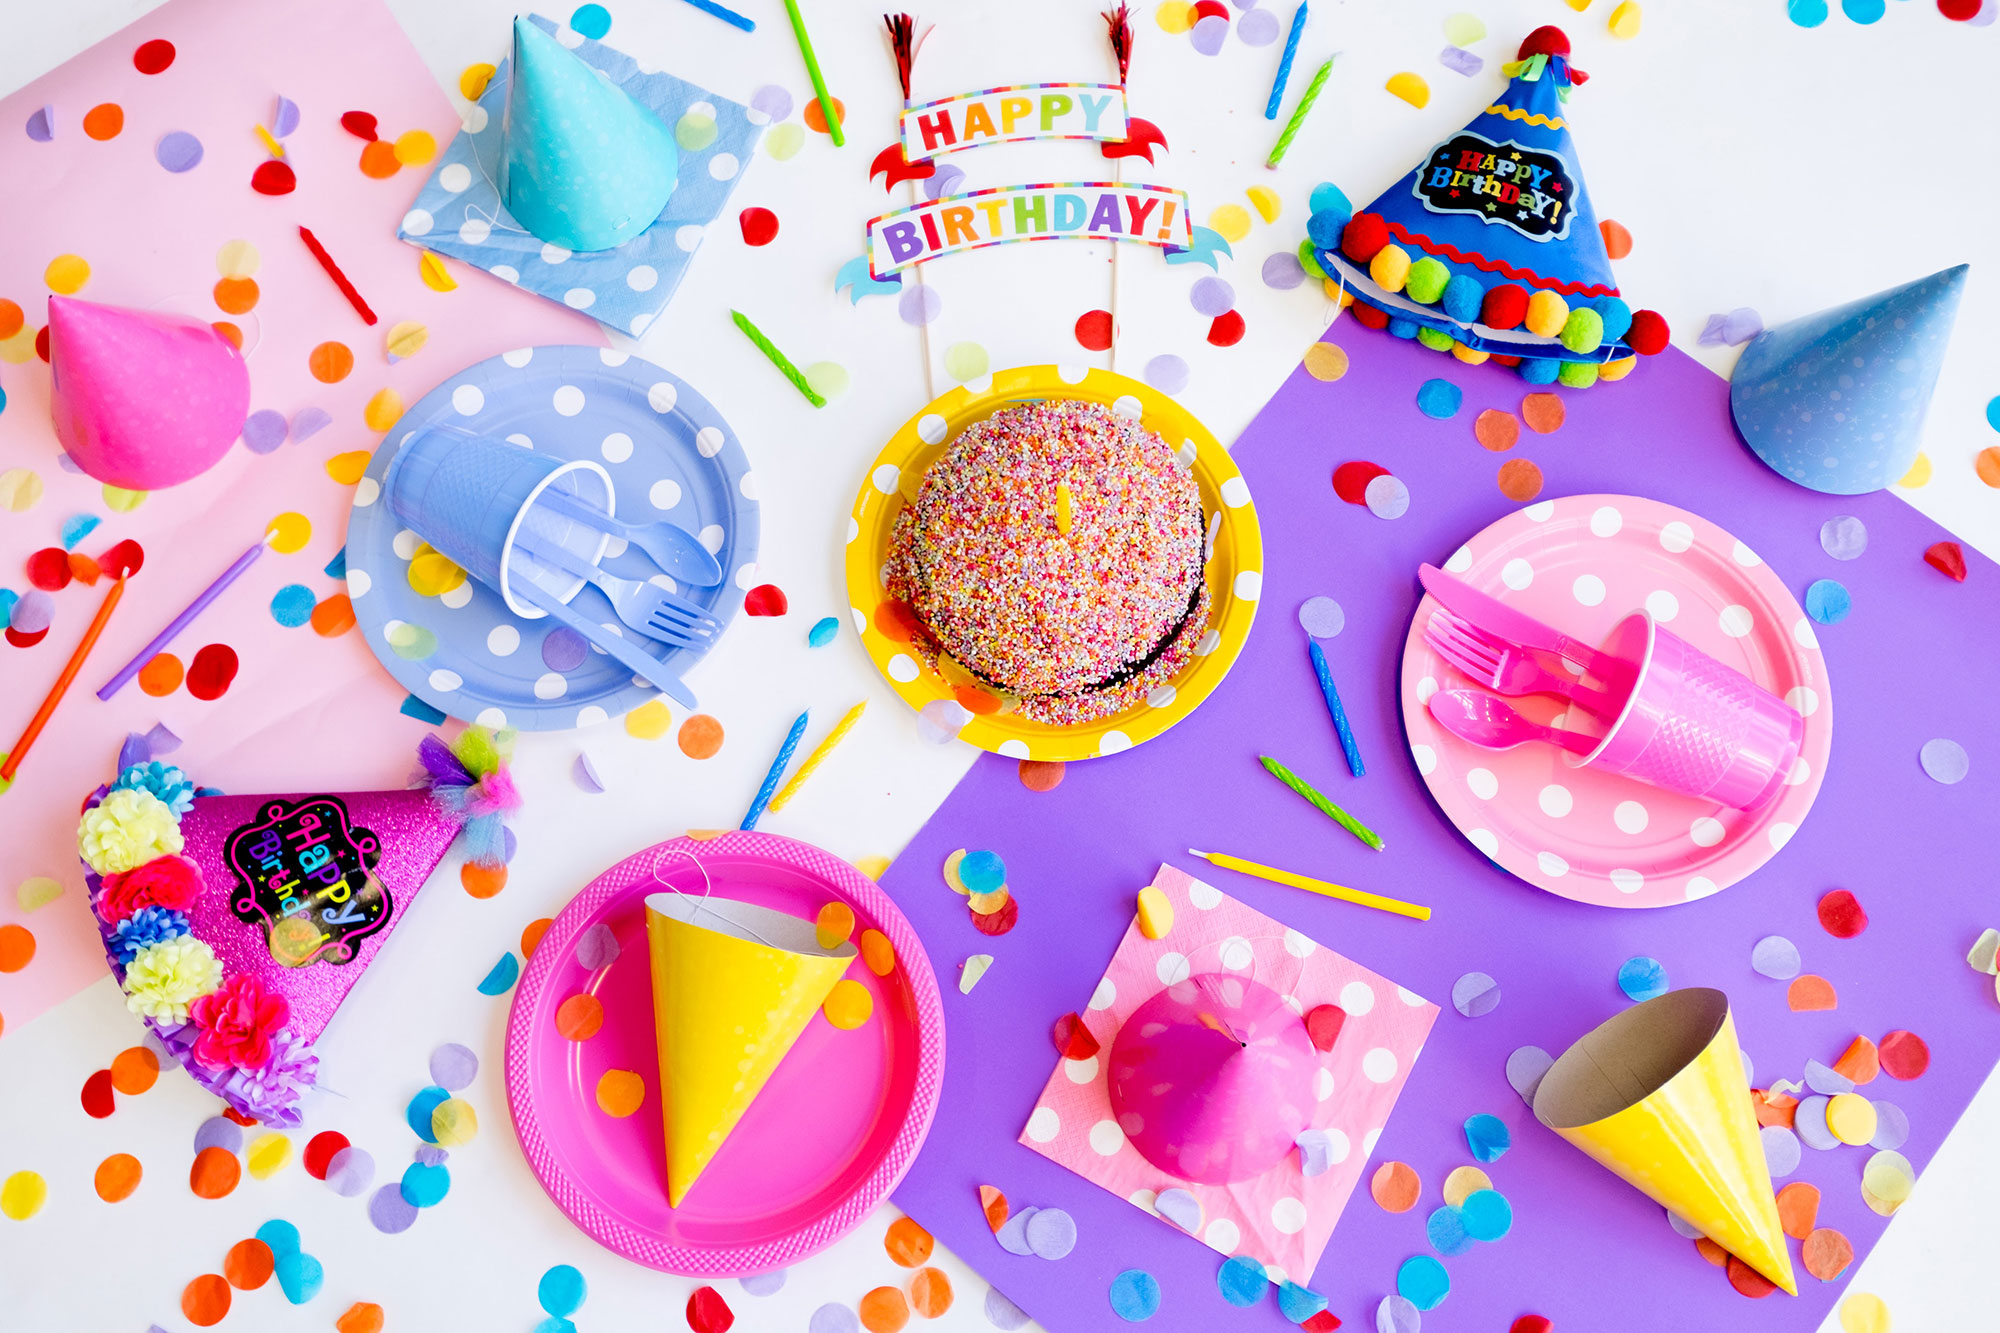 How to Choose the Perfect Birthday Gifts